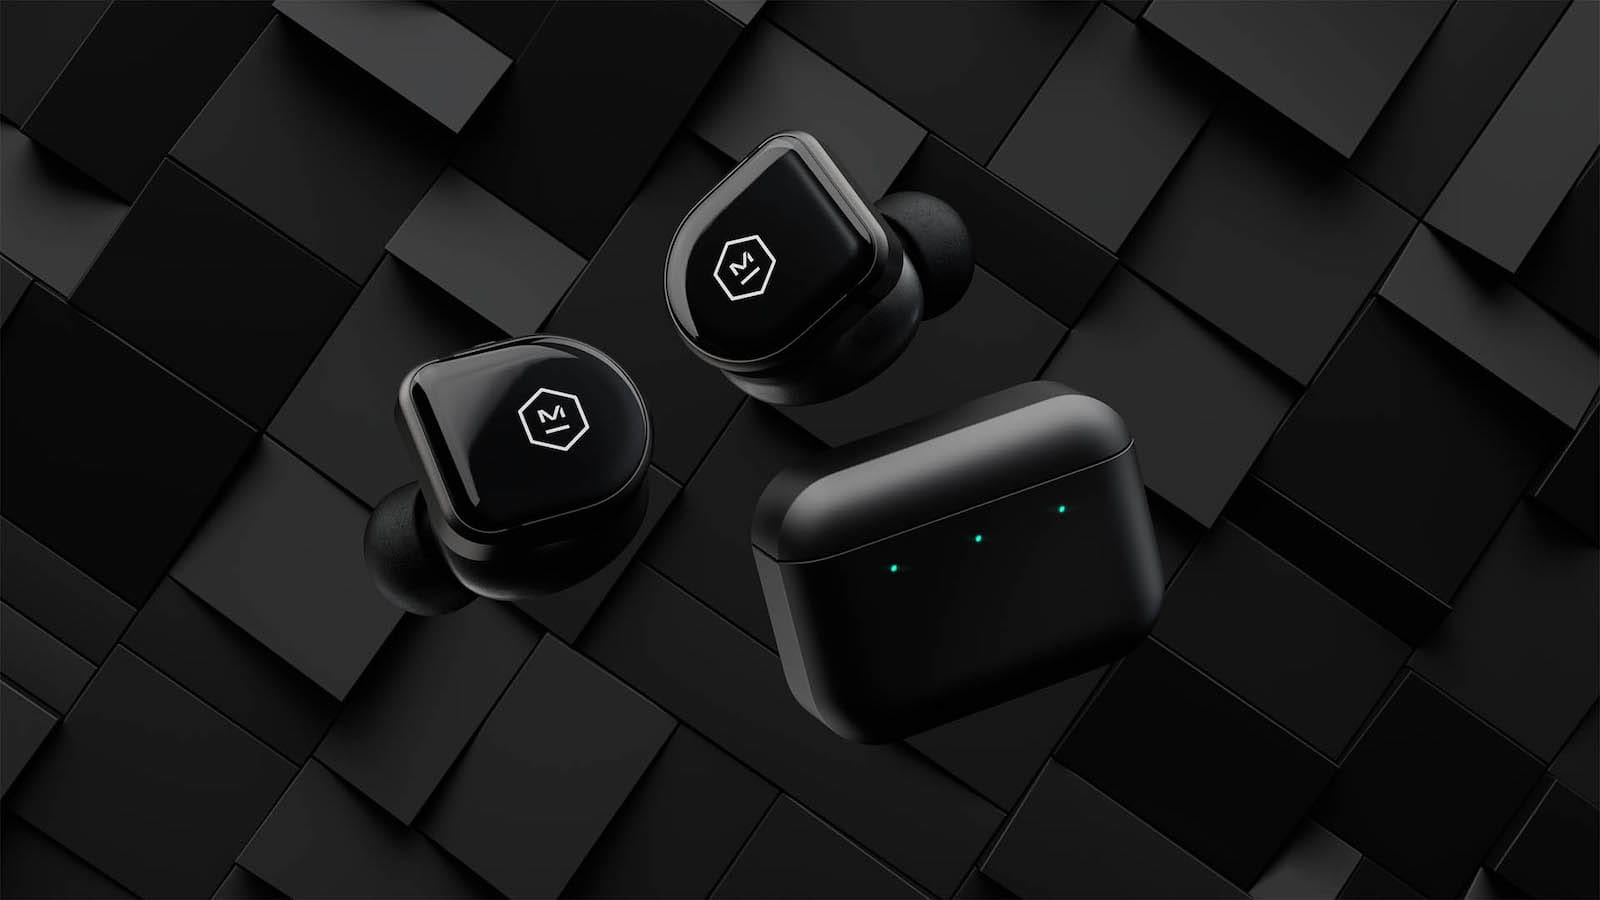 Master & Dynamic MW08 wireless earphones use larger drivers than their predecessors